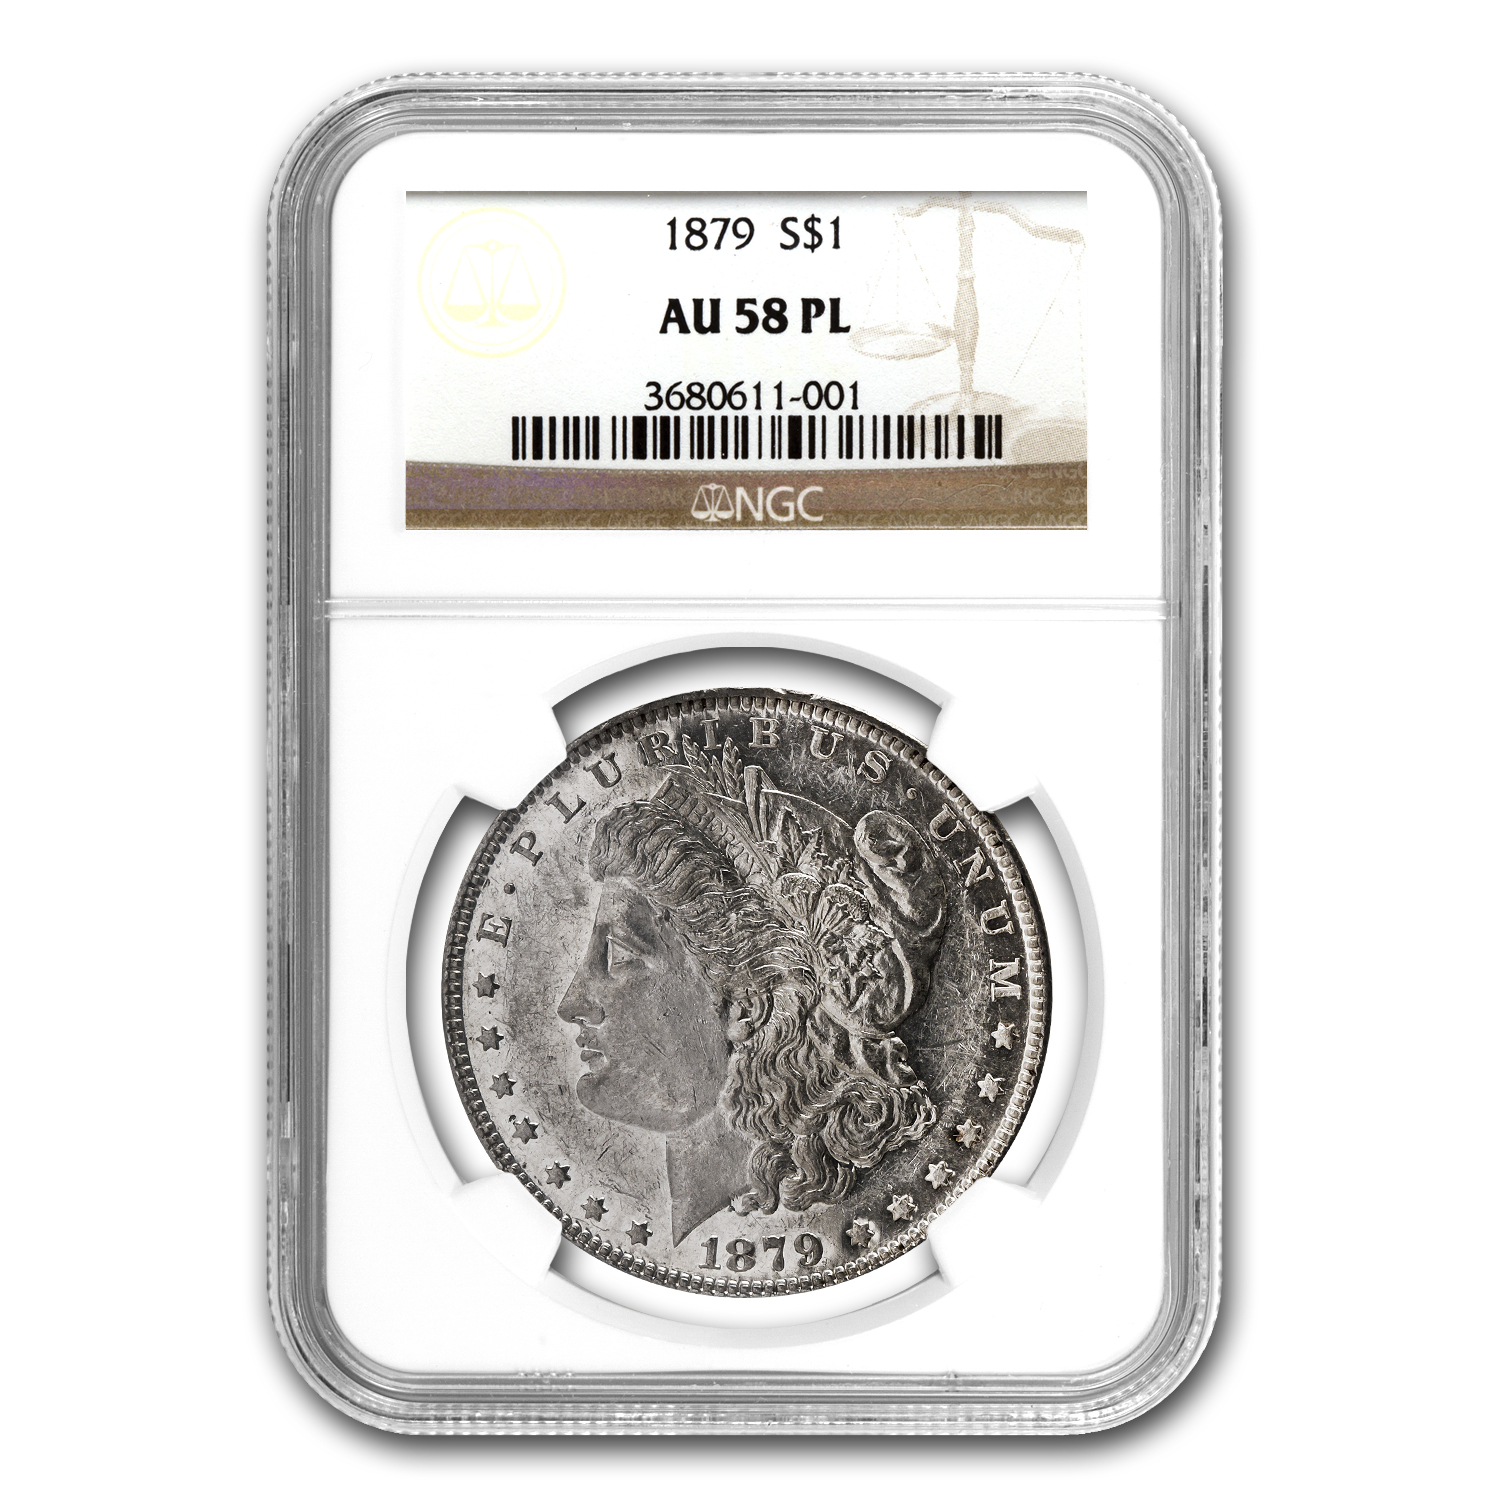 1879 Morgan Dollar - AU-58 PL Proof Like NGC